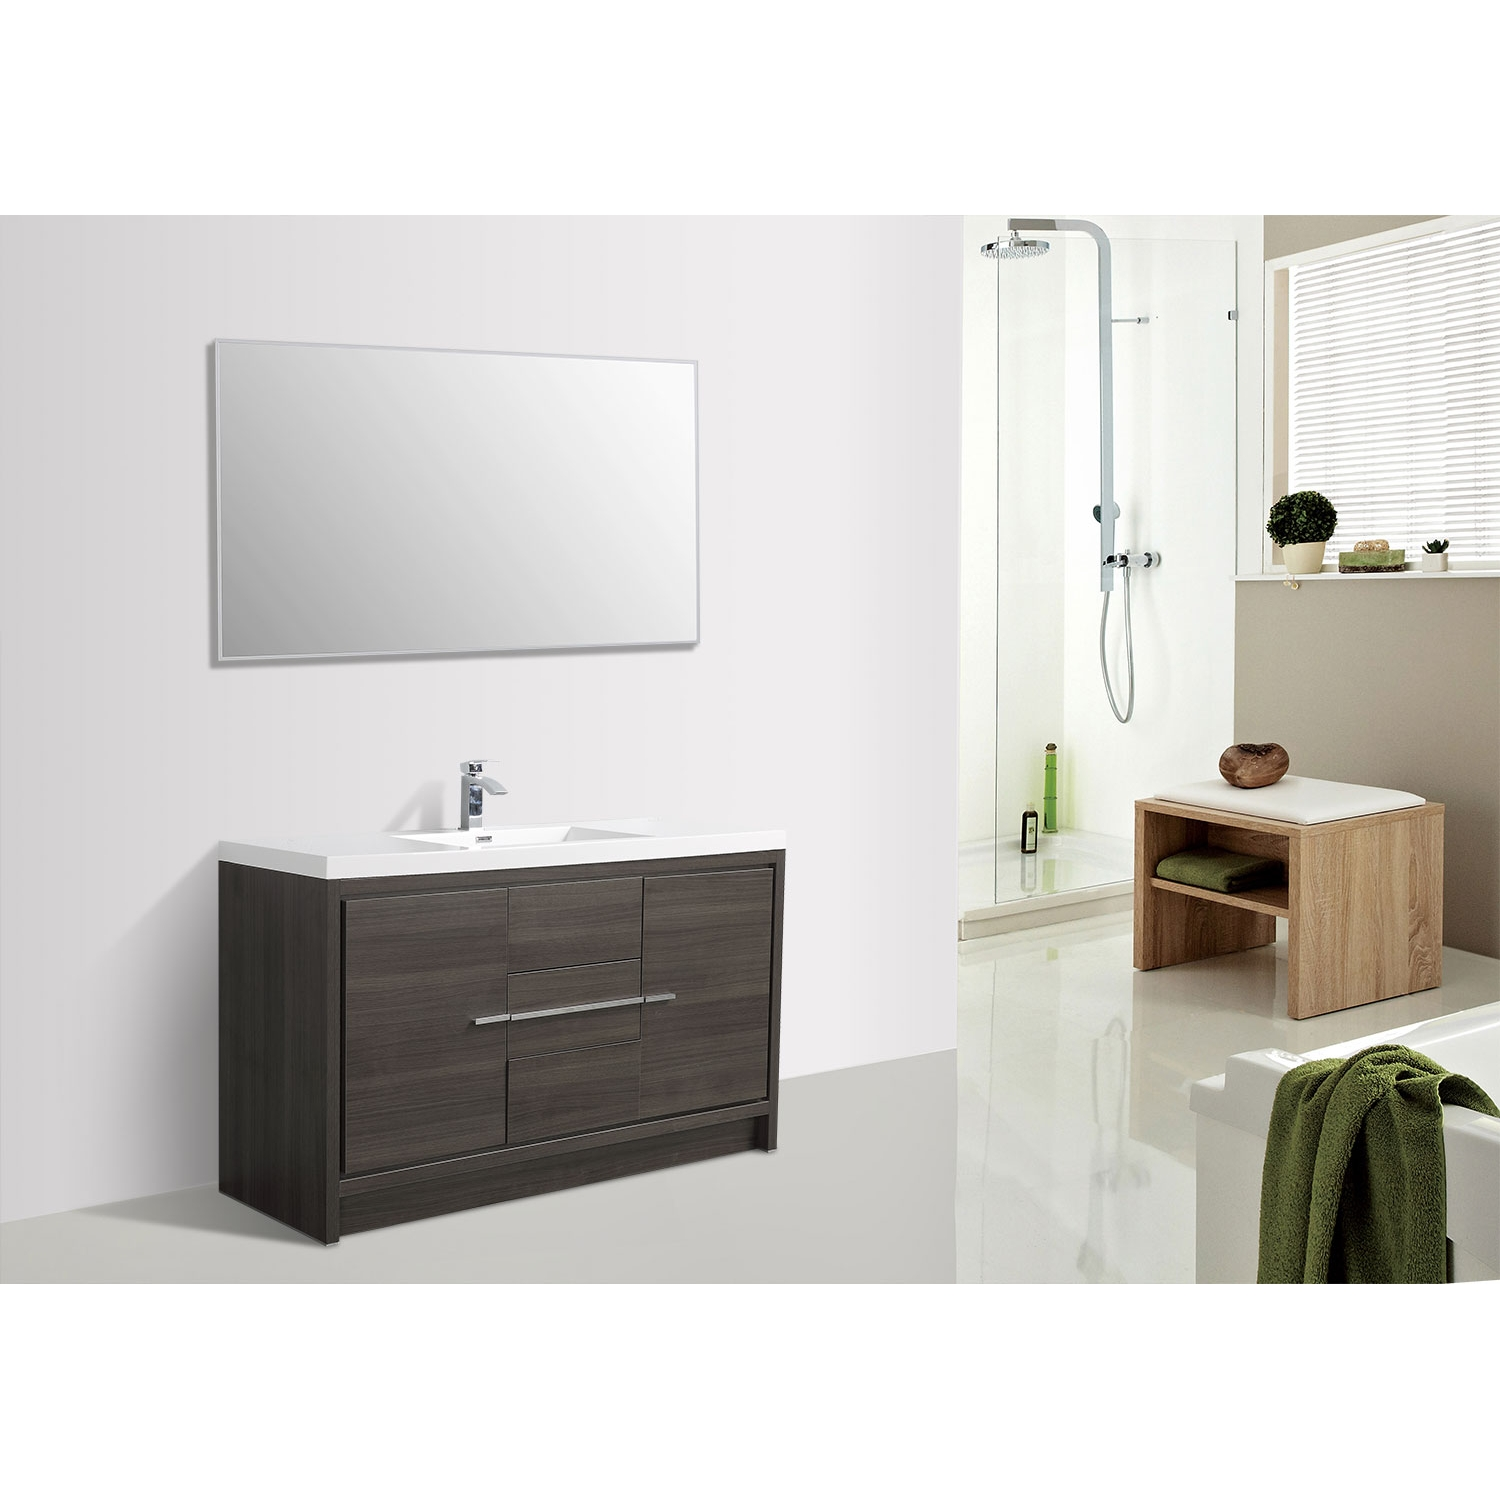 Buy Cbi Enna 59 Inch Single Modern Bathroom Vanity In Grey Oak Tn La1500s Go On Www Conceptbaths Com Free Shipping